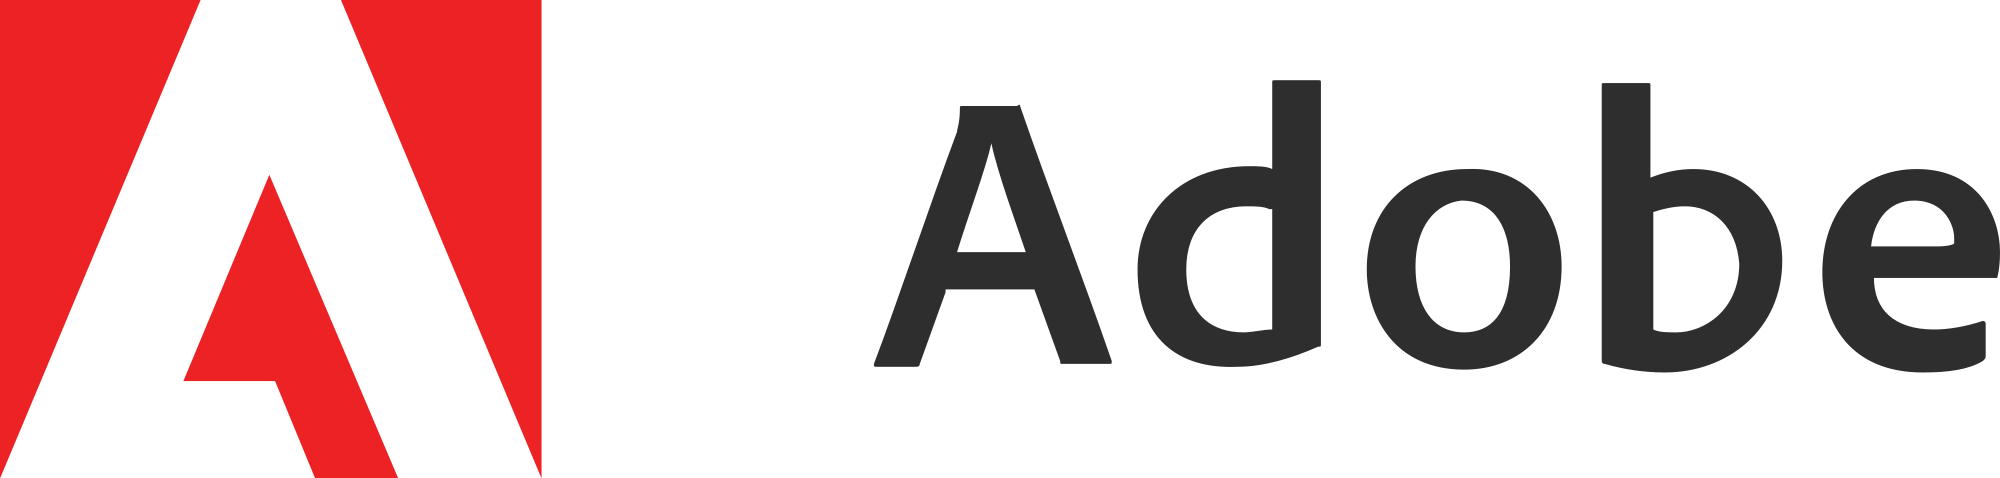 Adobe Logo - File:Adobe Systems logo and wordmark (2017).svg - Wikimedia Commons